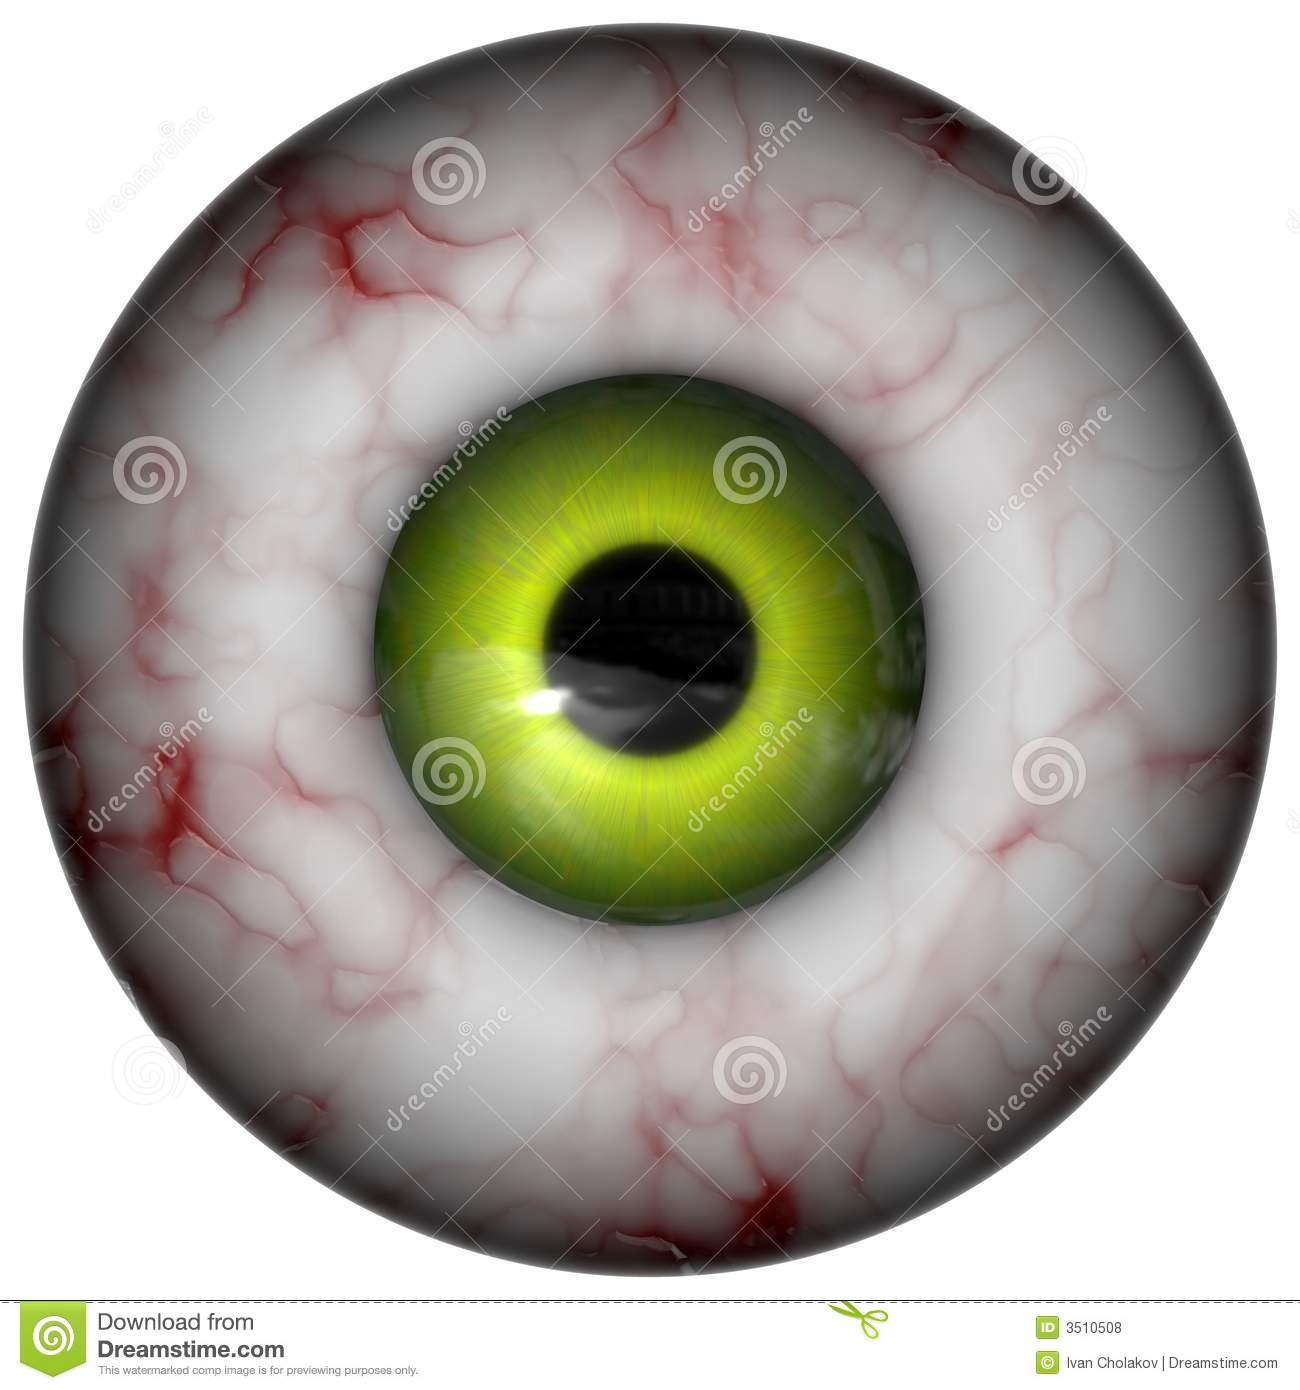 Bloodshot Eyeball Clipart Images & Pictures - Becuo